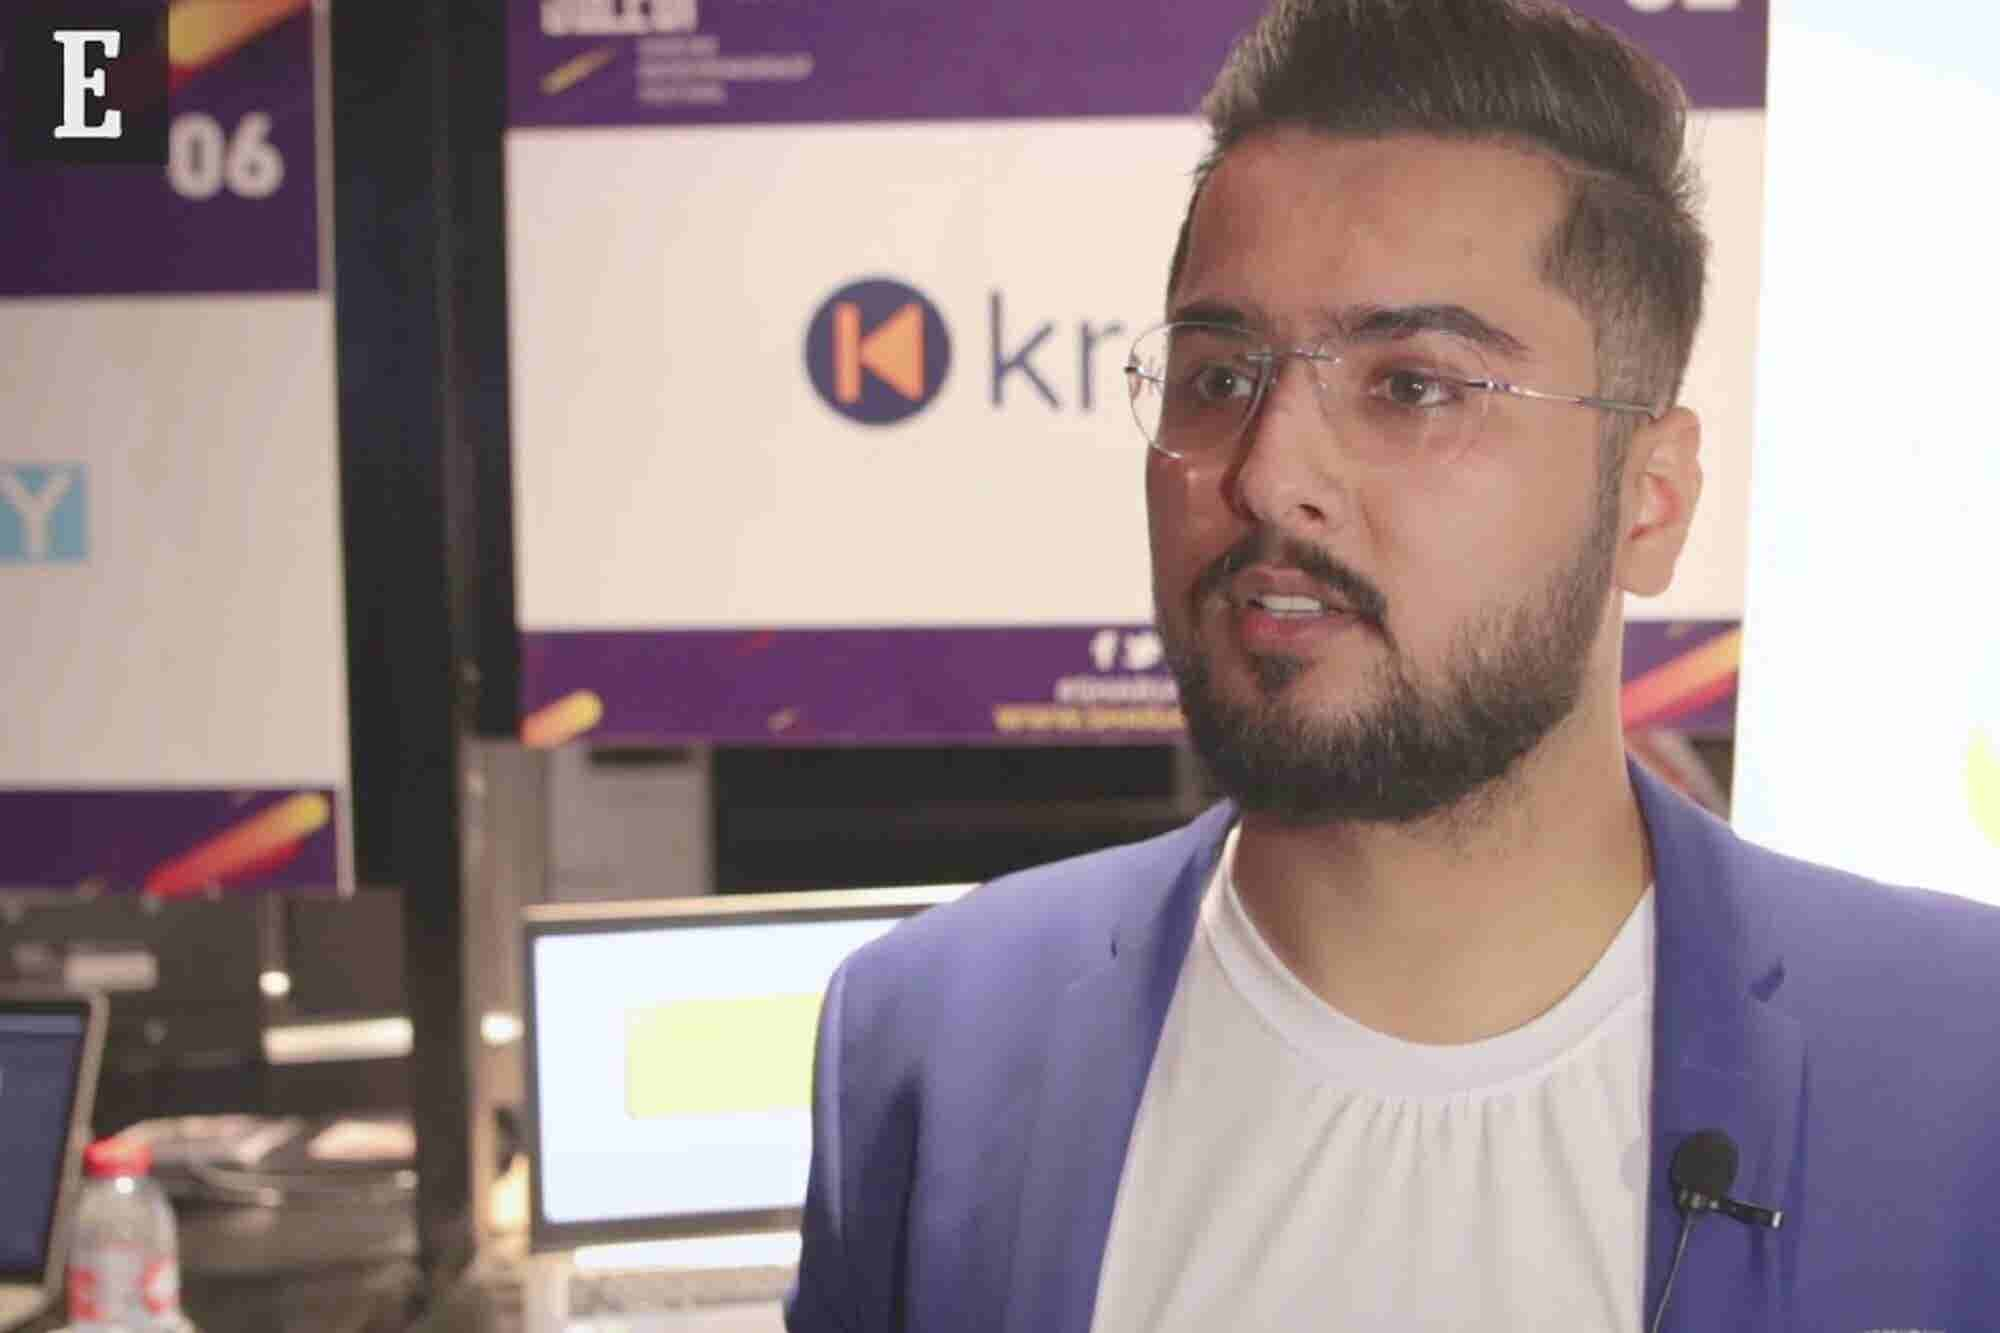 Kregzo's Nitin Bhalla Emphasizes Why You Shouldn't Just Follow Trends